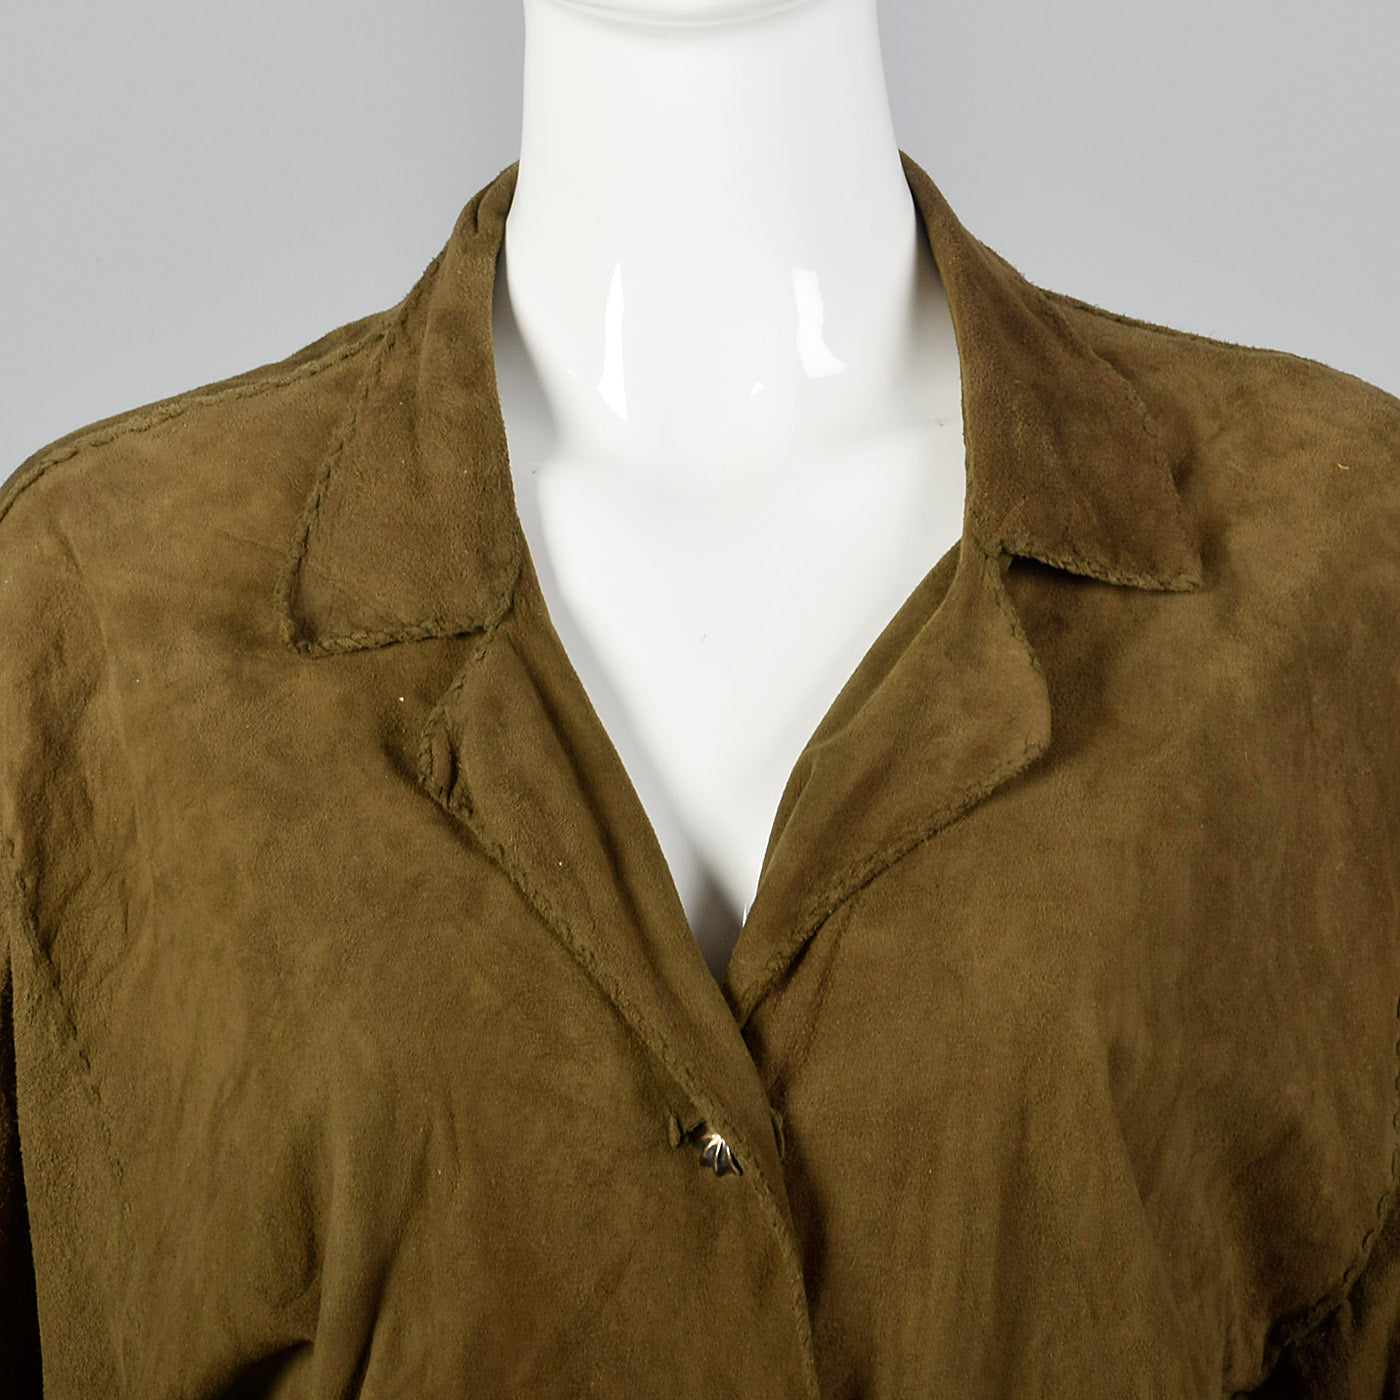 1980s Green Suede Leather Shirt